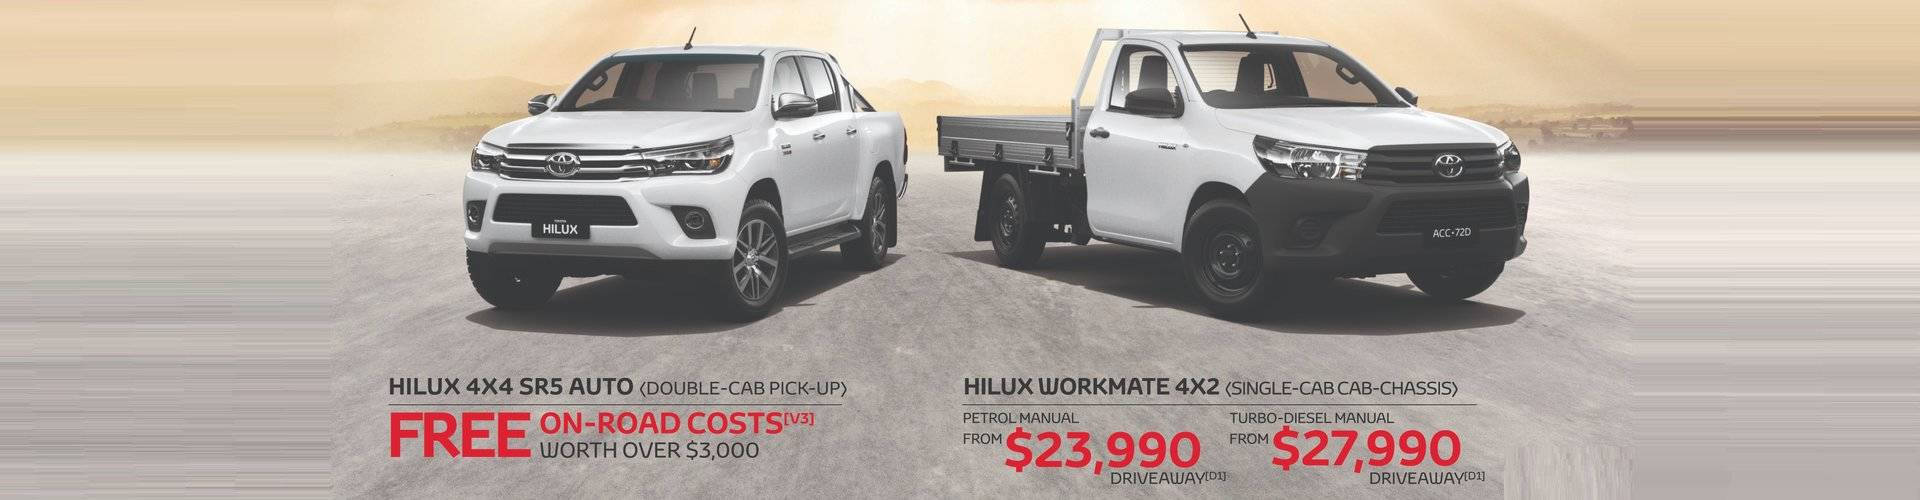 Waverley Toyota's Great Deals on HiLux 4x4 SR5 and HiLux 4x2